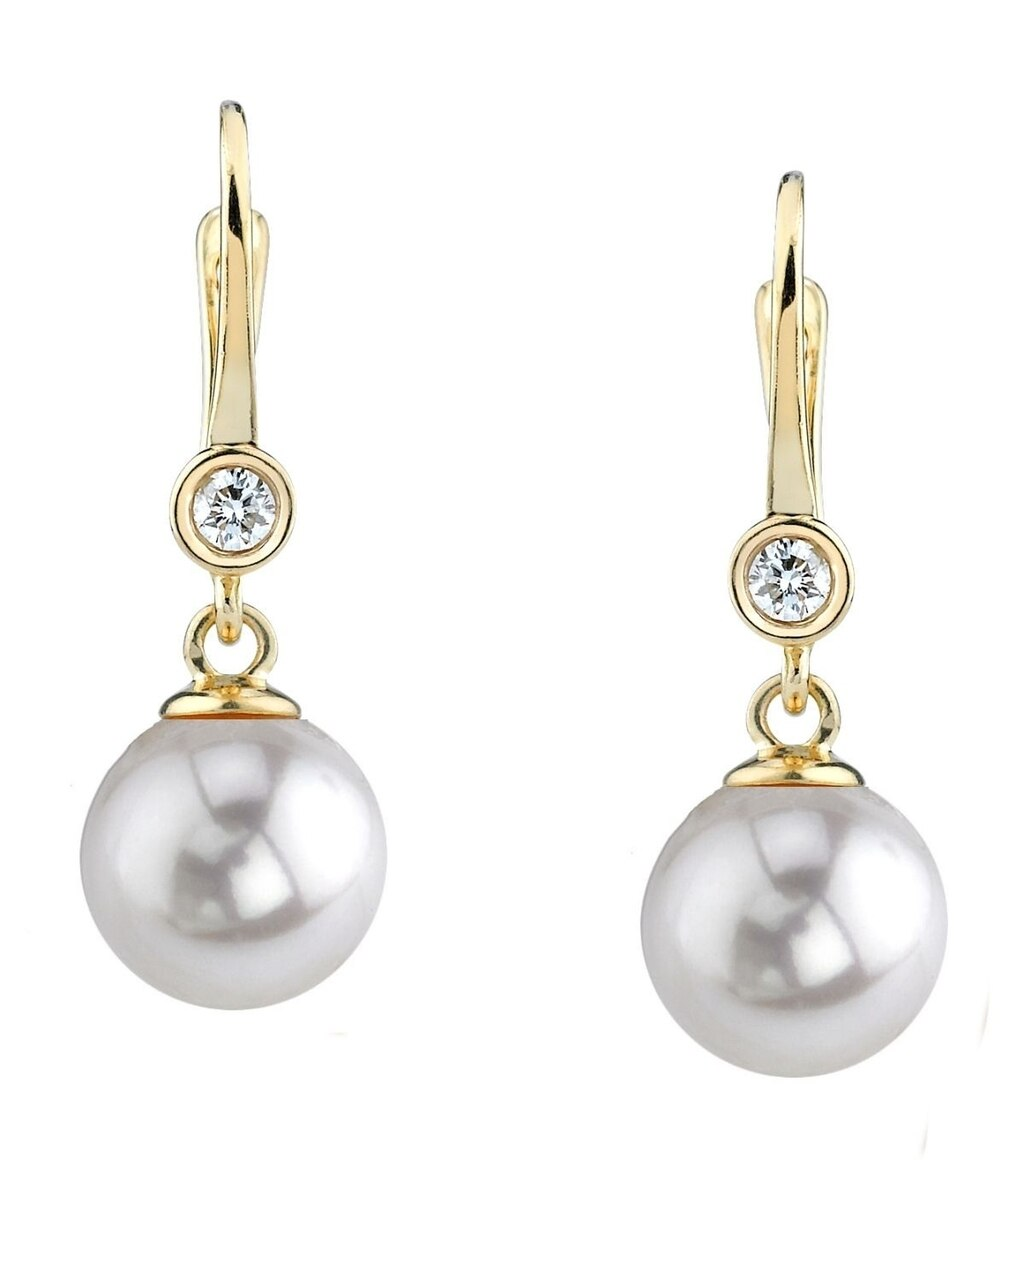 Elegant drop earrings feature two 8.5-9.0mm Japanese Akoya pearls, selected for their luminous luster